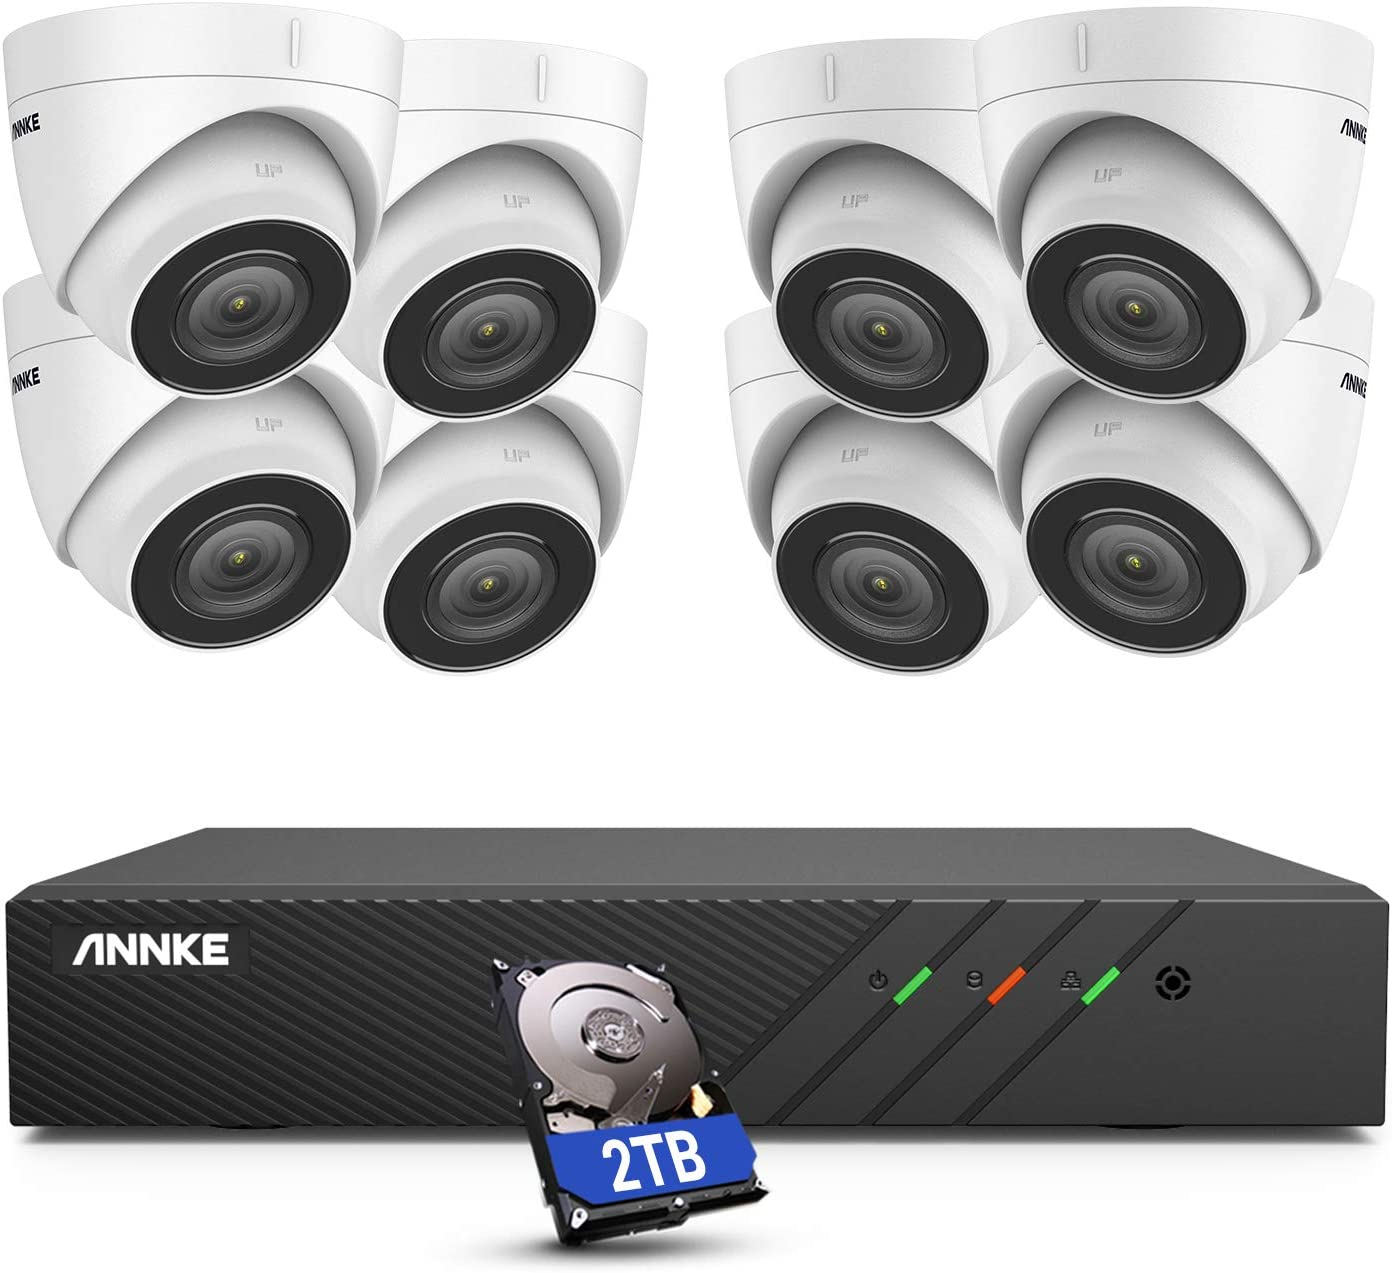 ANNKE H500 8CH Dallas Mall Turret PoE Security Camera w Super beauty product restock quality top System H.265+ N 6MP